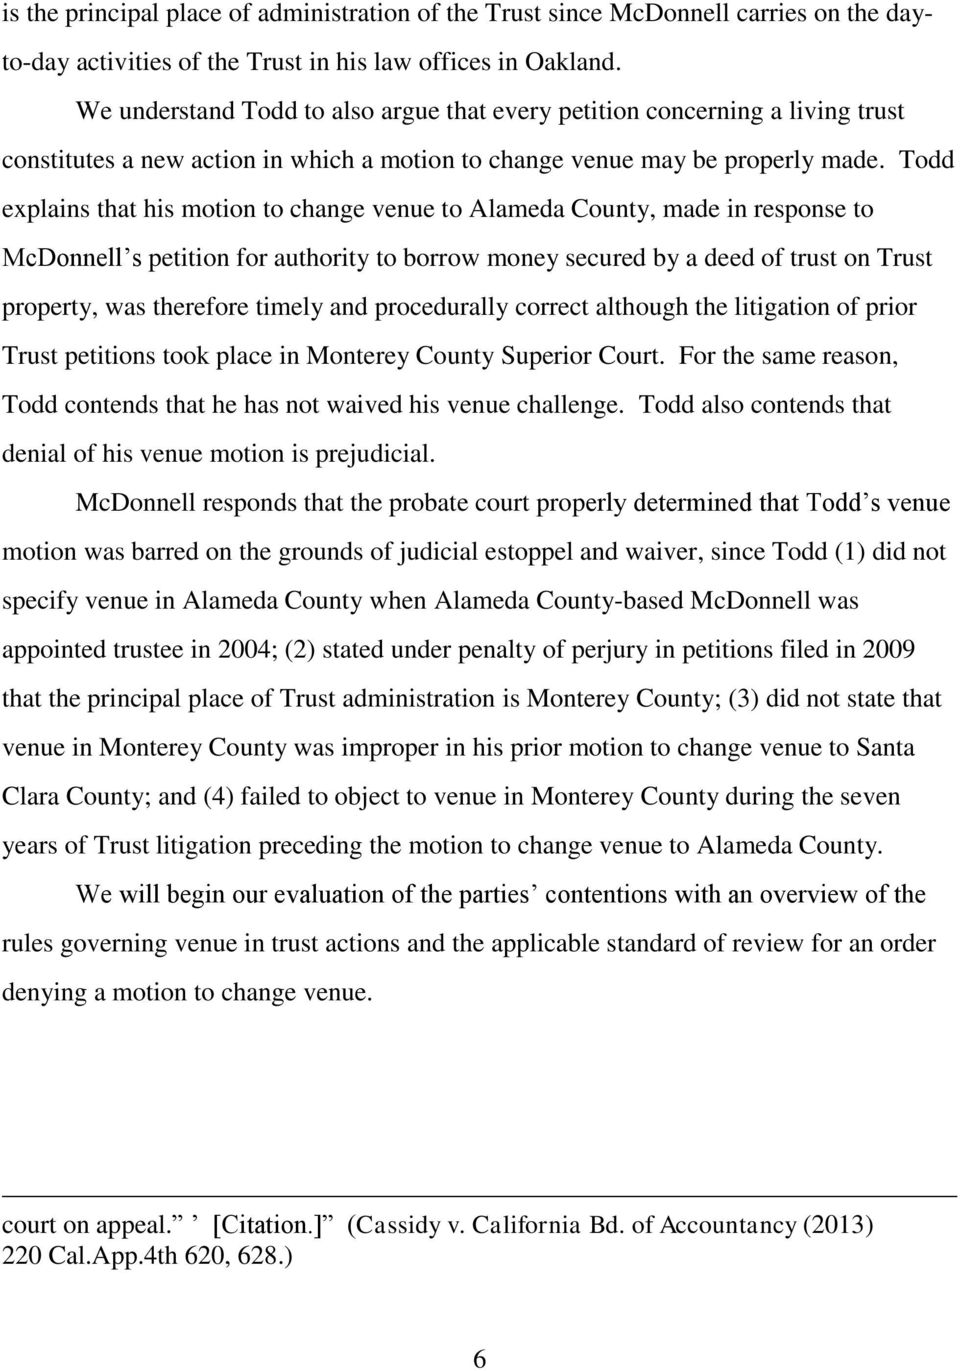 Todd explains that his motion to change venue to Alameda County, made in response to McDonnell s petition for authority to borrow money secured by a deed of trust on Trust property, was therefore